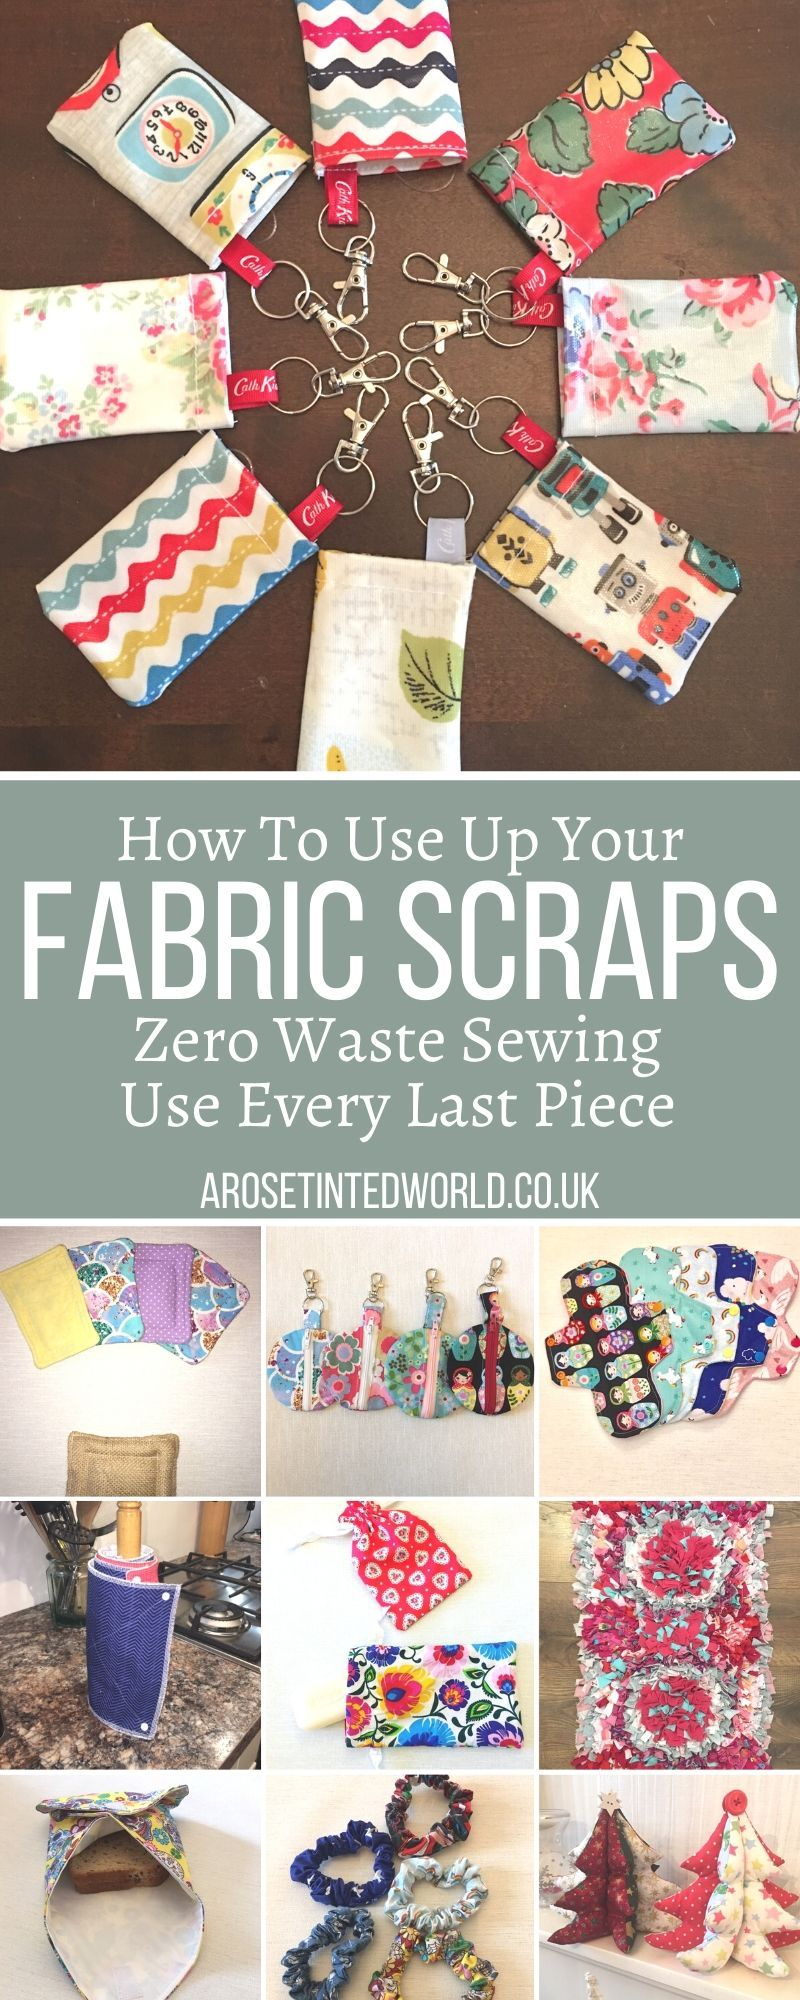 How To Use Up Your Fabric Scraps